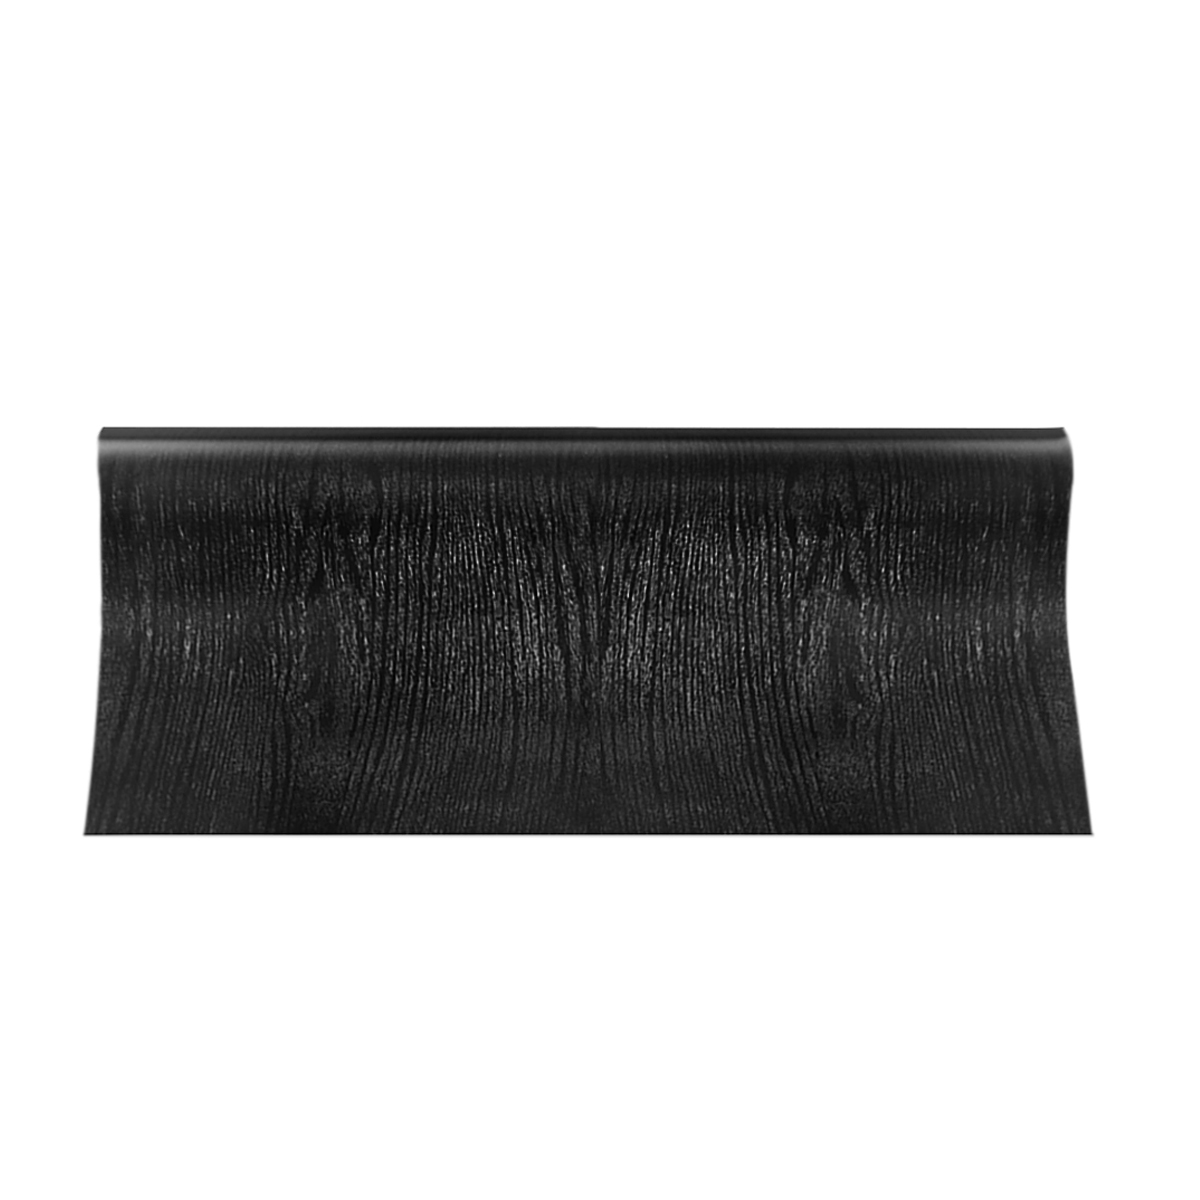 Black Wood Looking Textured Self Adhesive Decor Contact Paper Vinyl Shelf Liner Wall Paper